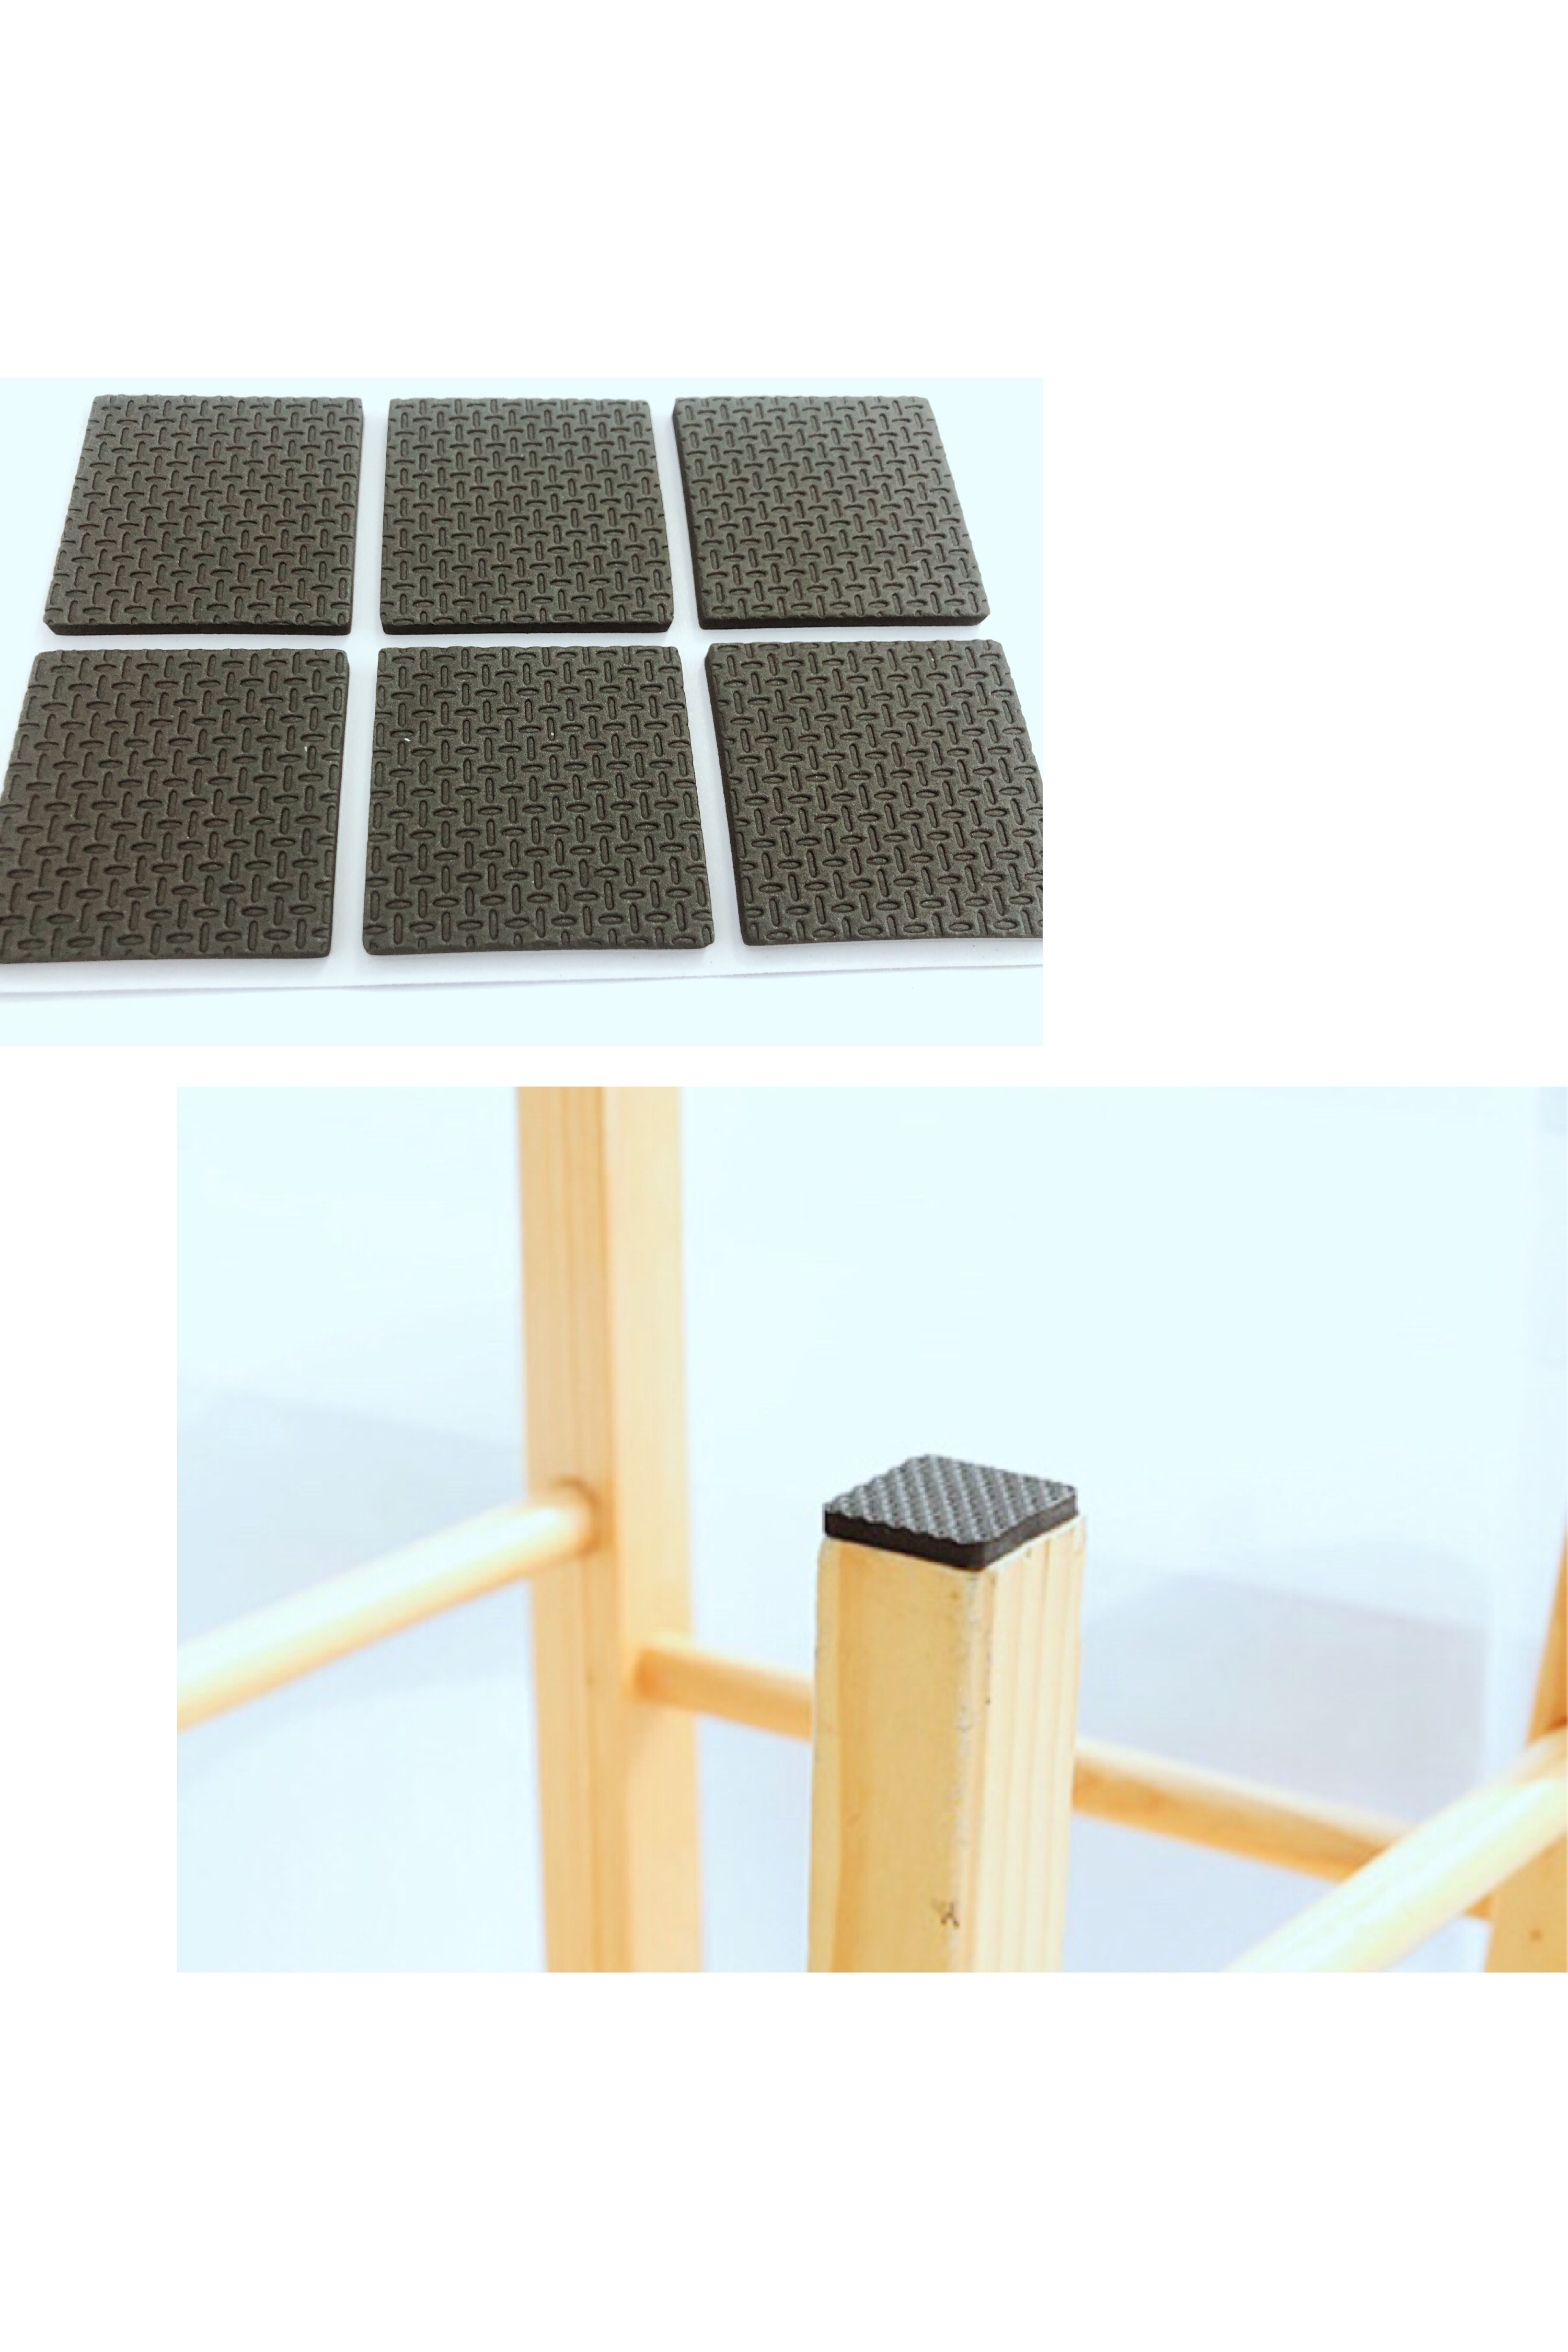 Black Round Self Adhesive Silicone Rubber Feet Furniture Pad Protectors 4.5-90mm